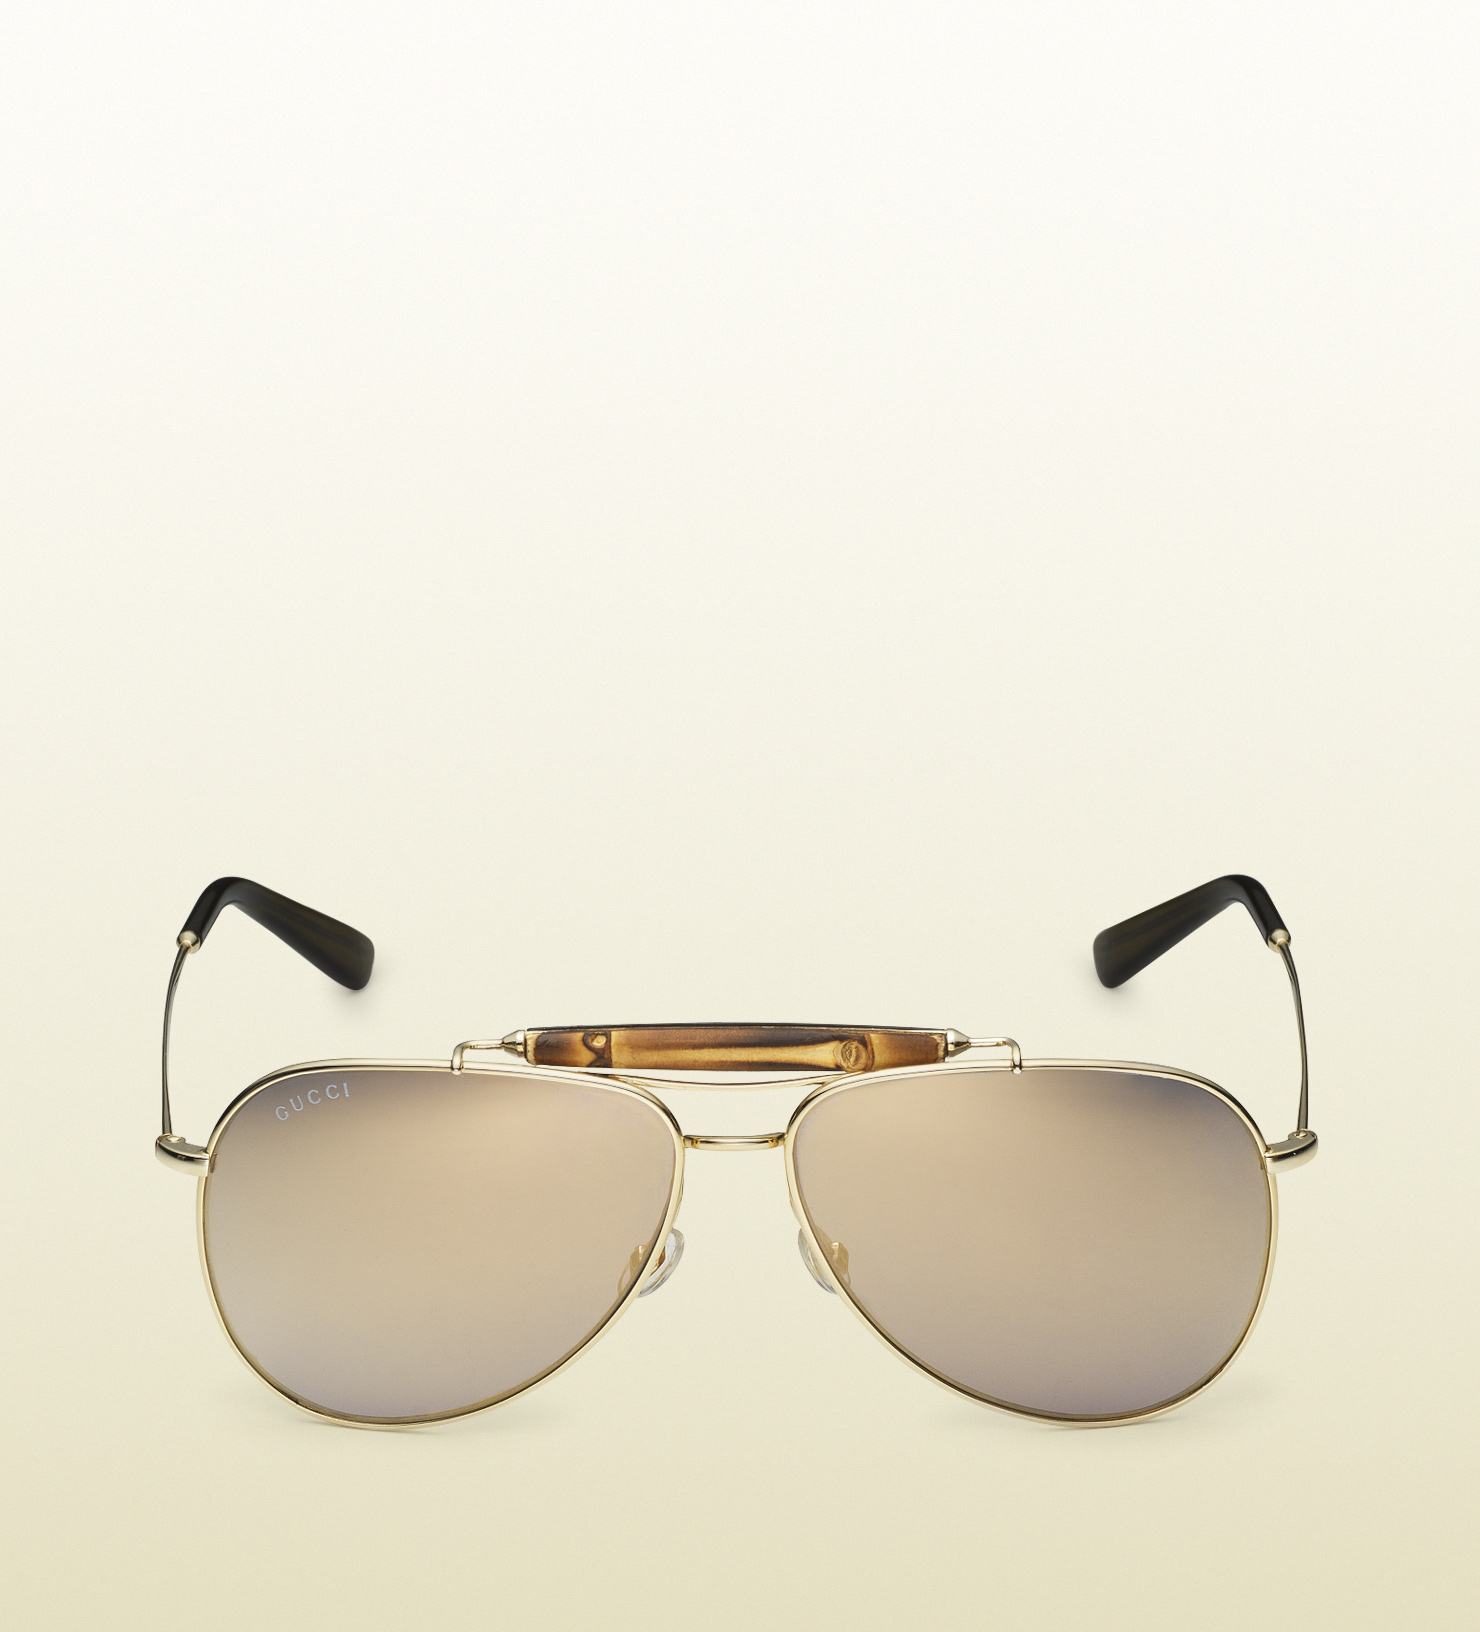 6279ba0c9e04a Gucci Aviator Sunglasses With Bamboo Detail in Natural - Lyst